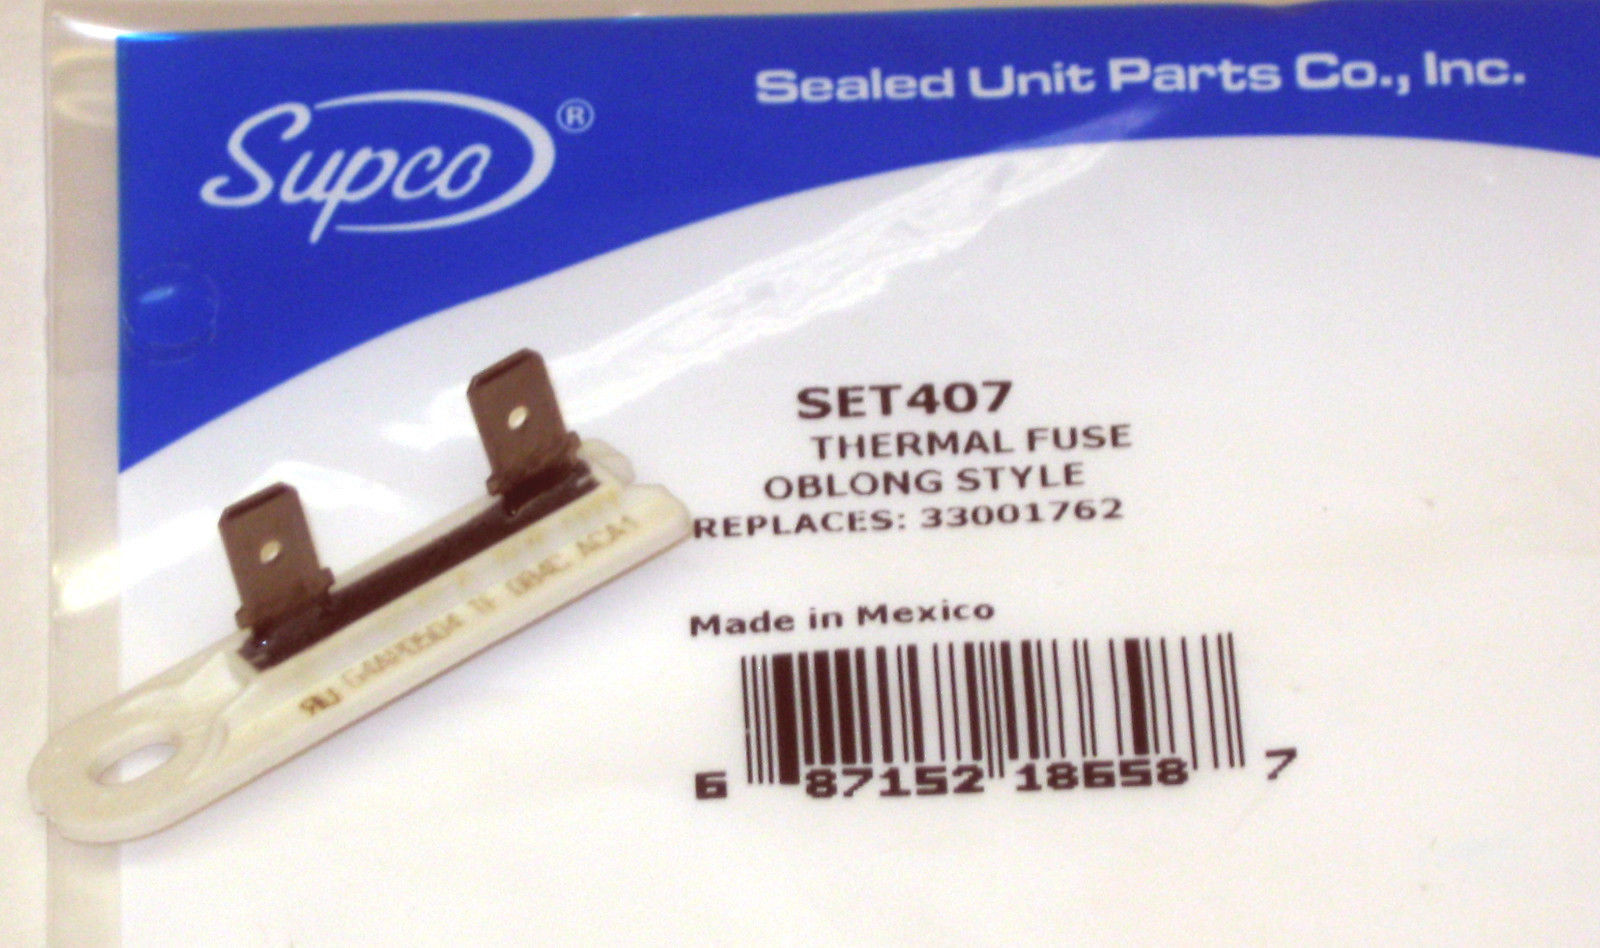 Set407 For Maytag Dryer Thermal Fuse Limit 33001762